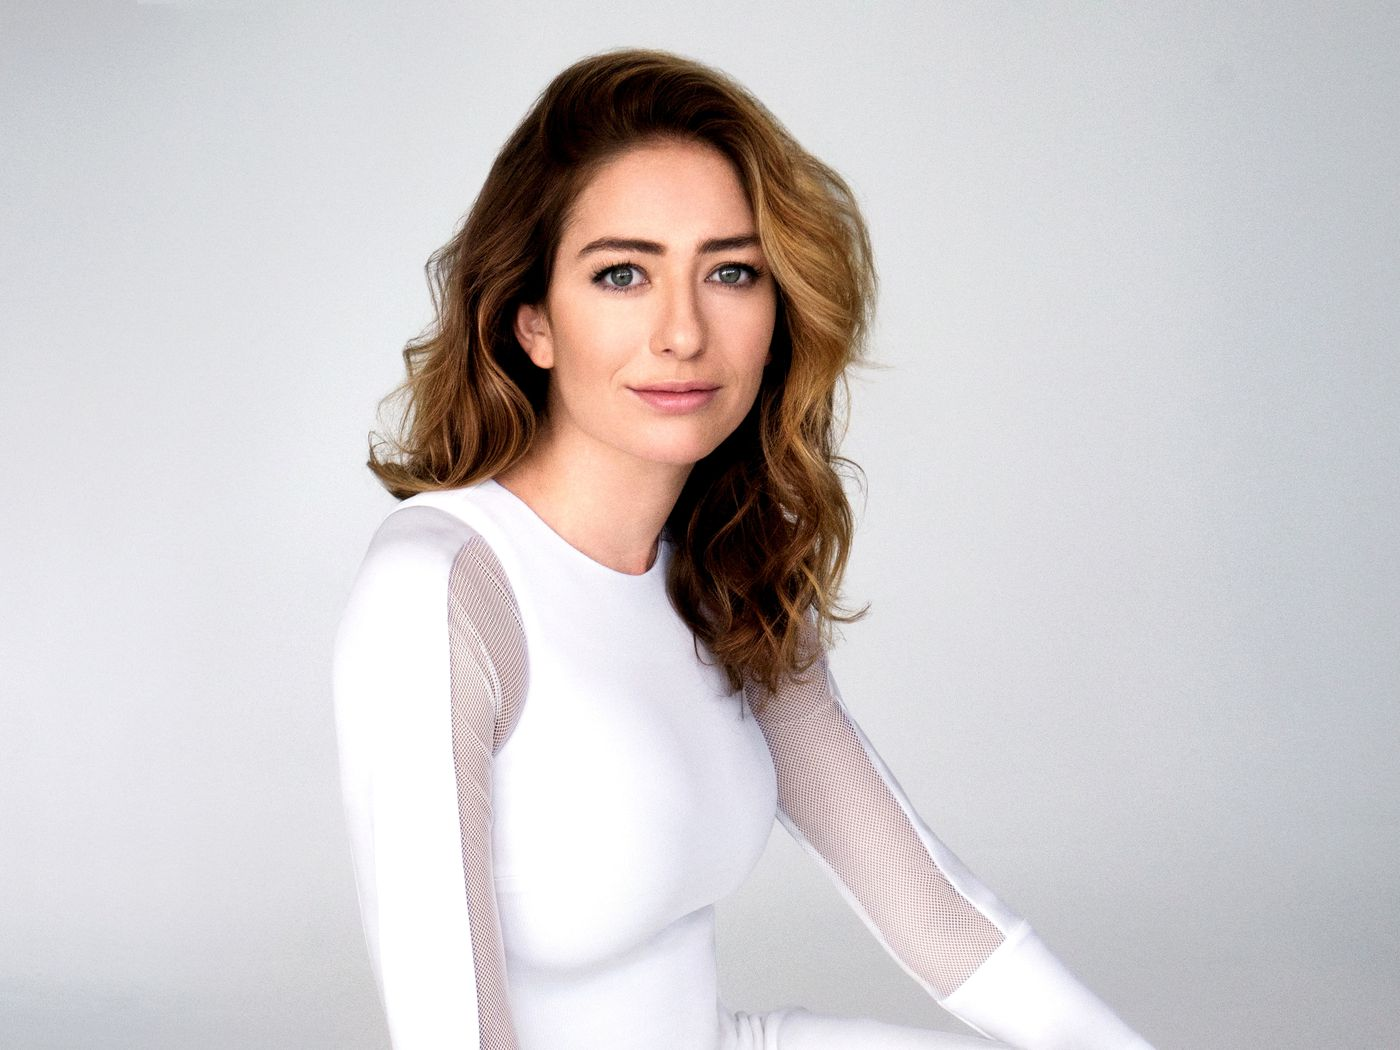 Tinder Co Founder Whitney Wolfe on Her New Women First Dating App     Racked Tinder Co Founder Whitney Wolfe on Her New Women First Dating App   Racked